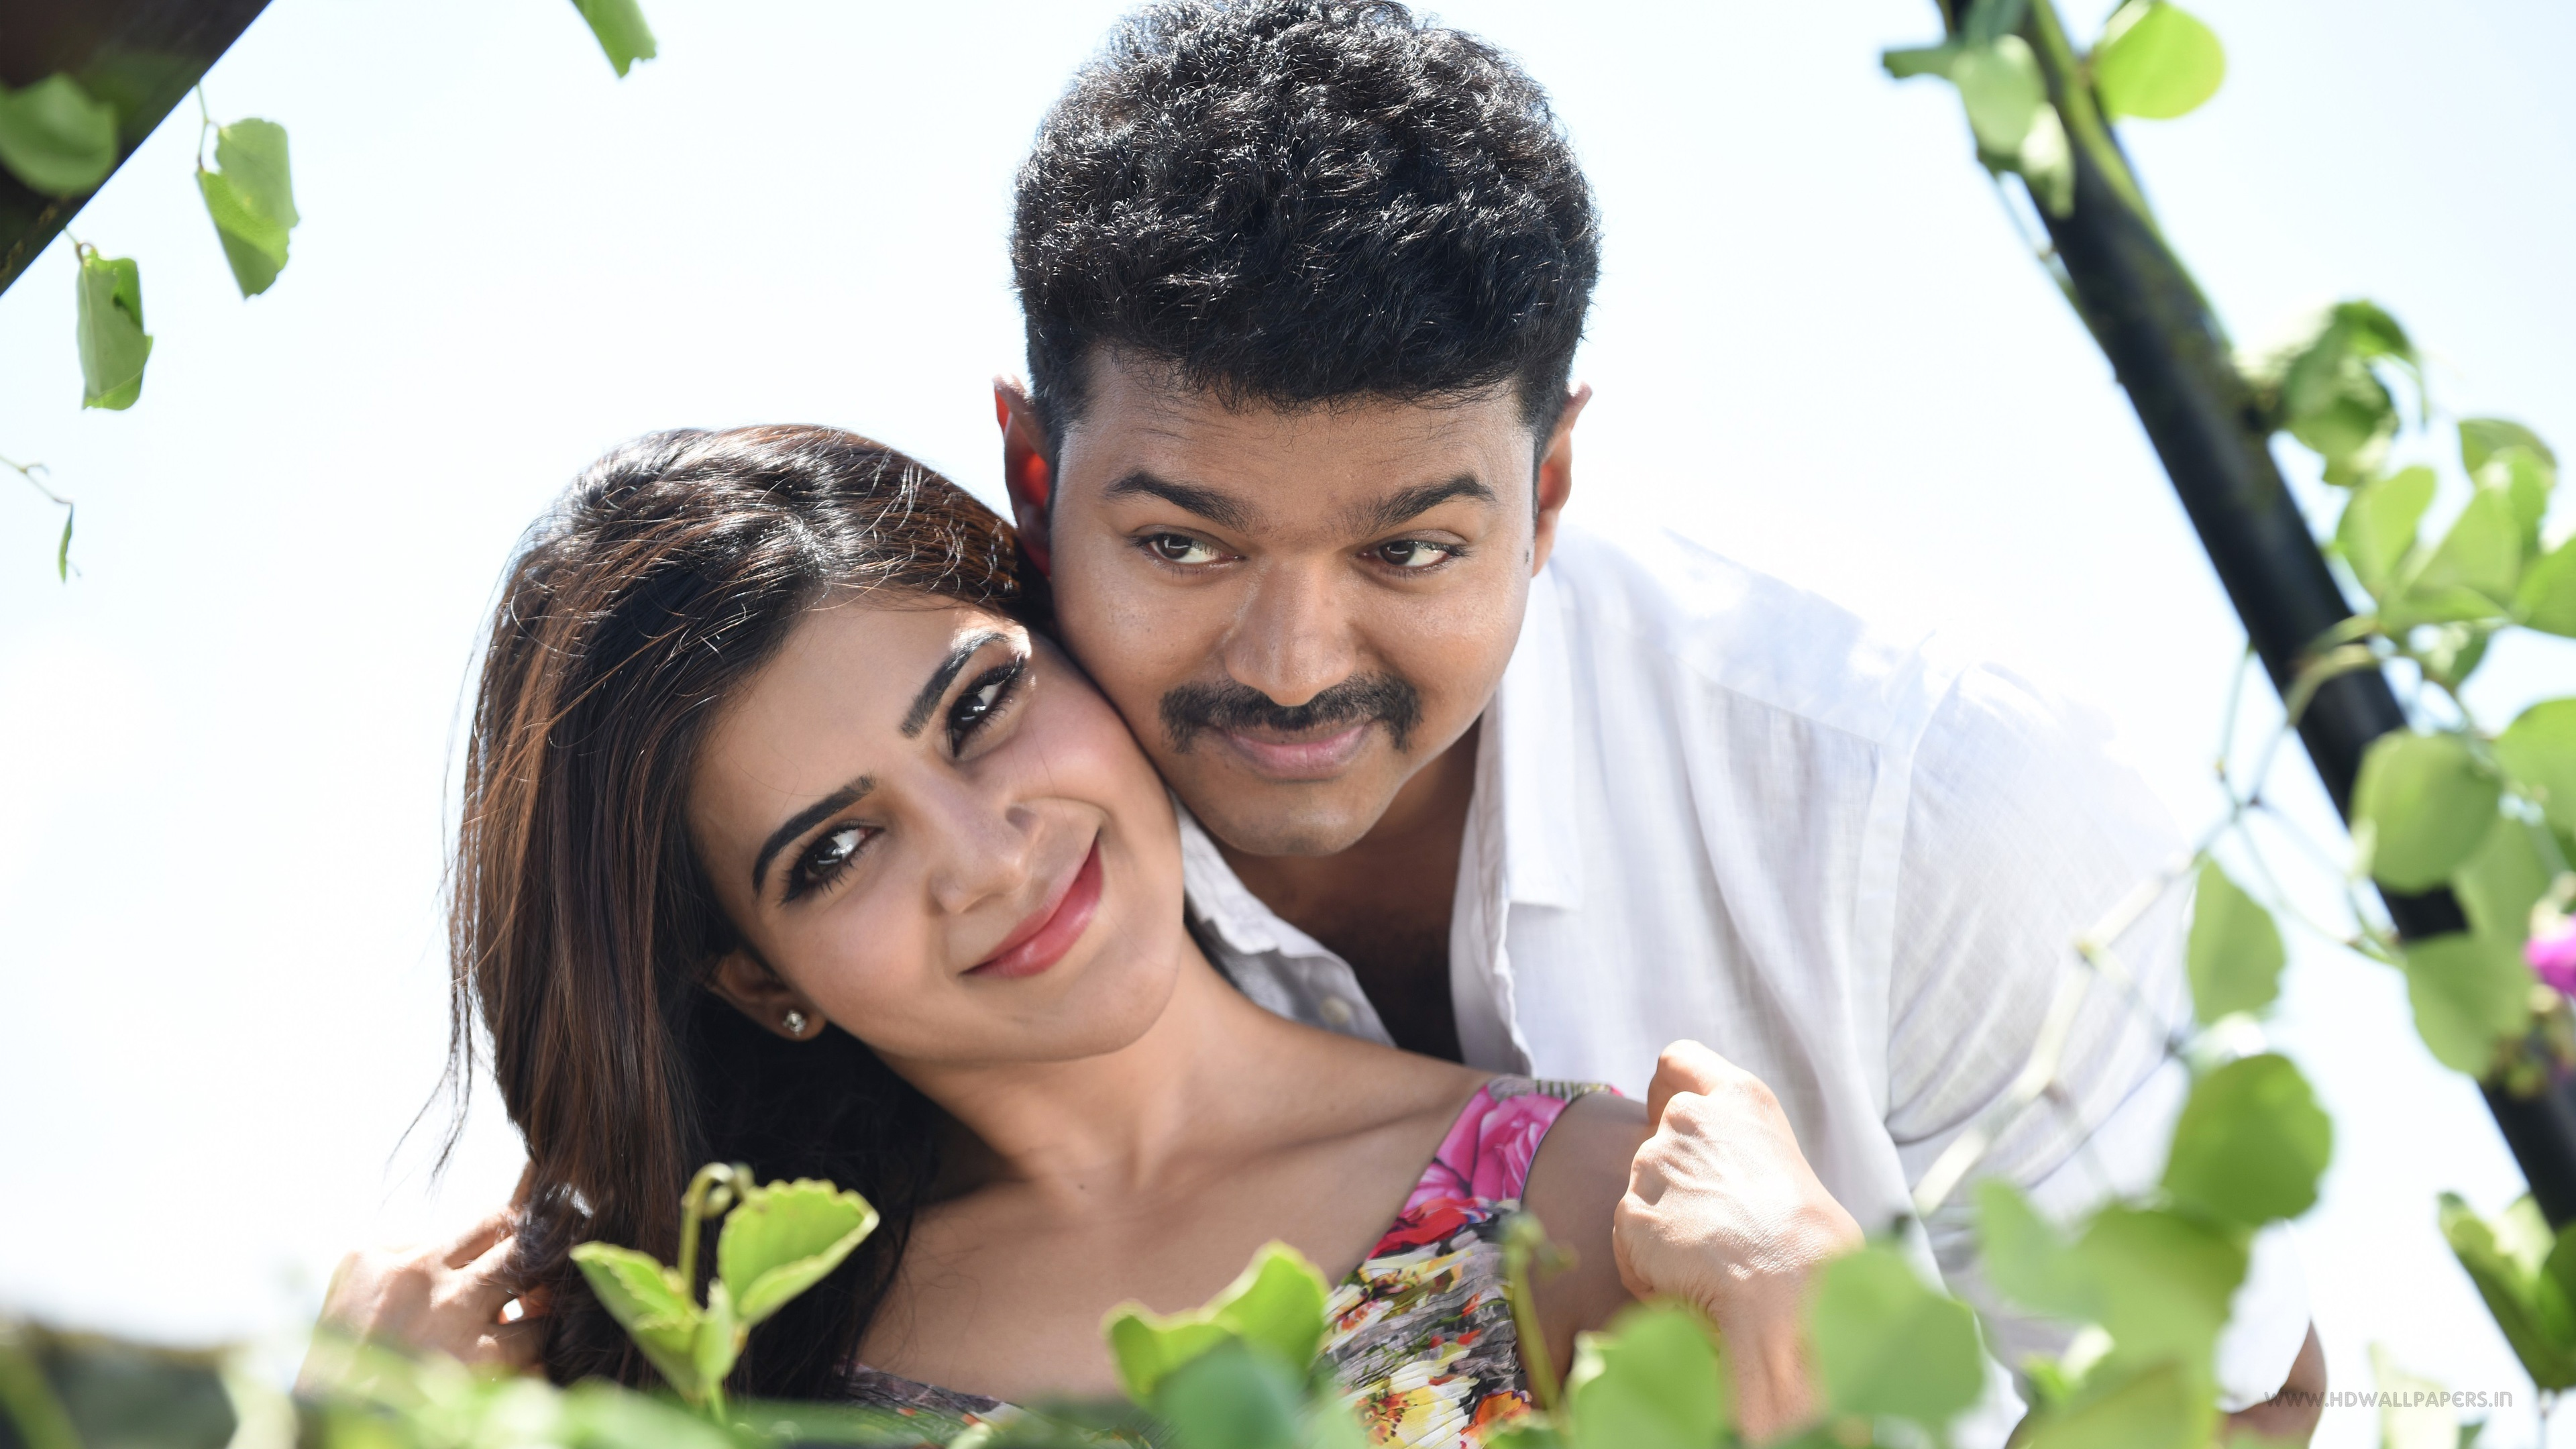 Samantha Vijay Theri Wallpapers In Jpg Format For Free Download